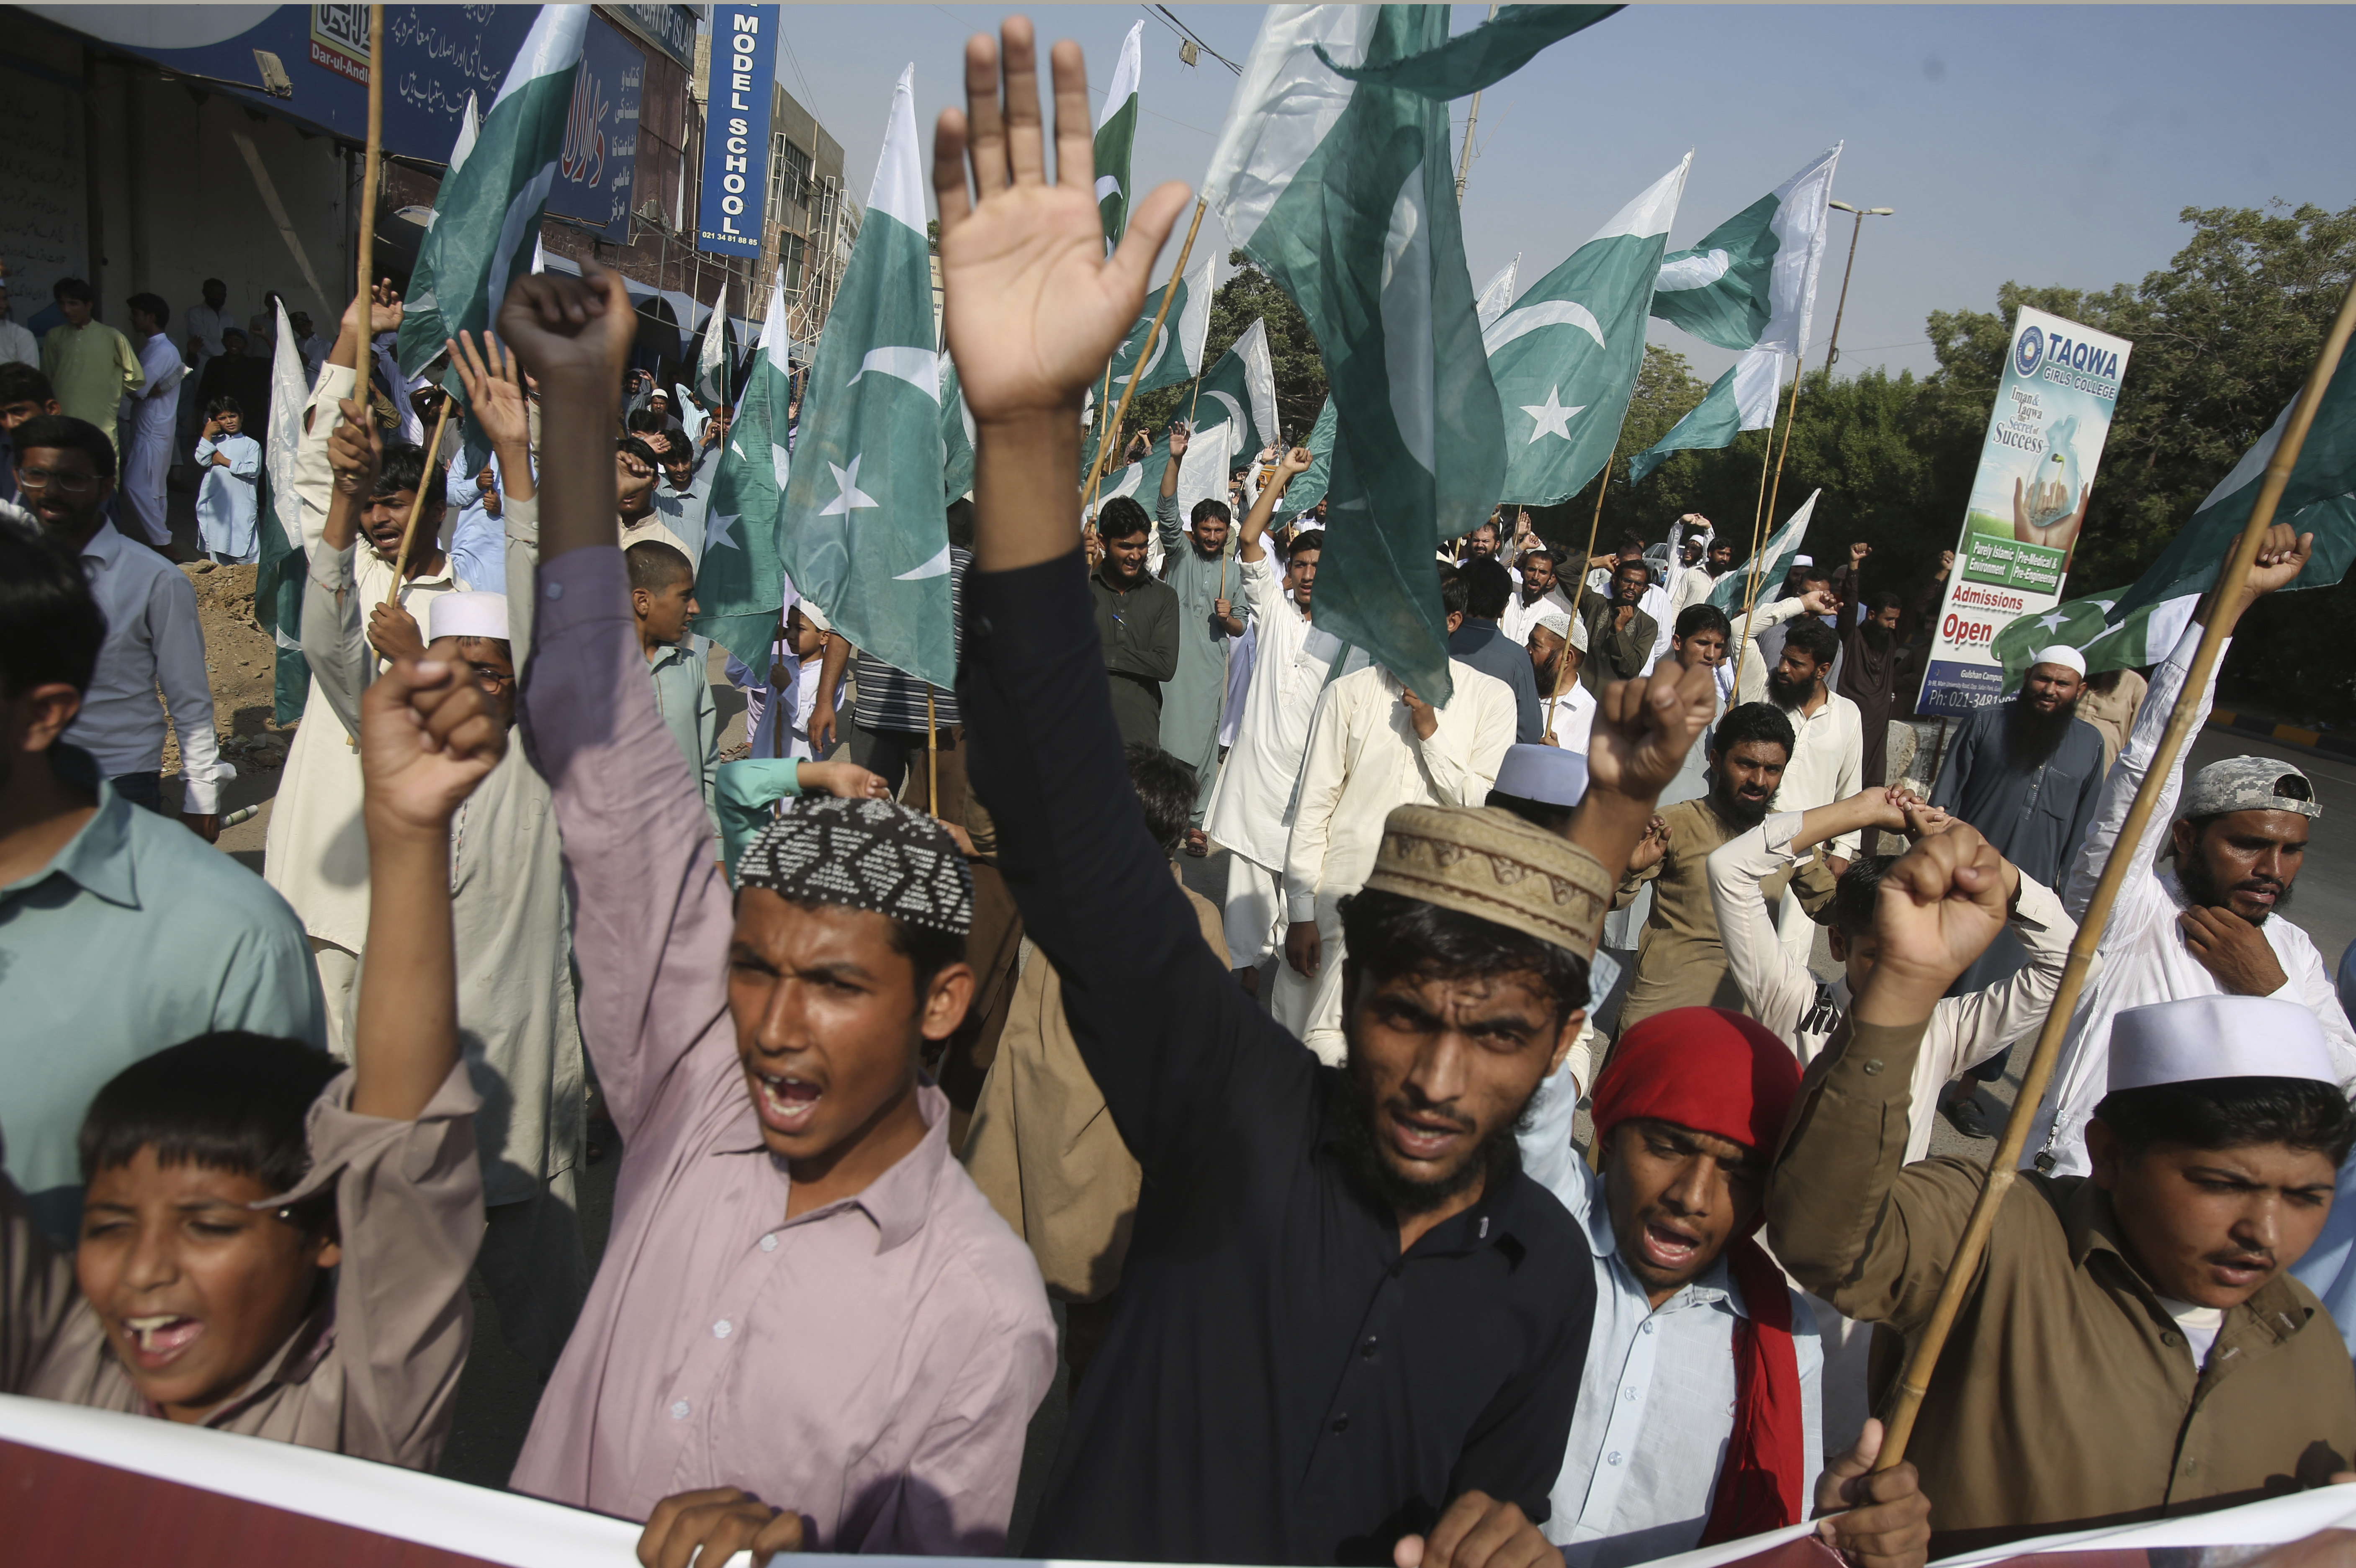 Supporters of the Pakistani religious party, Jamaat-ud-Dawa rally to express solidarity with Kashmiris in Karachi, Pakistan - AP